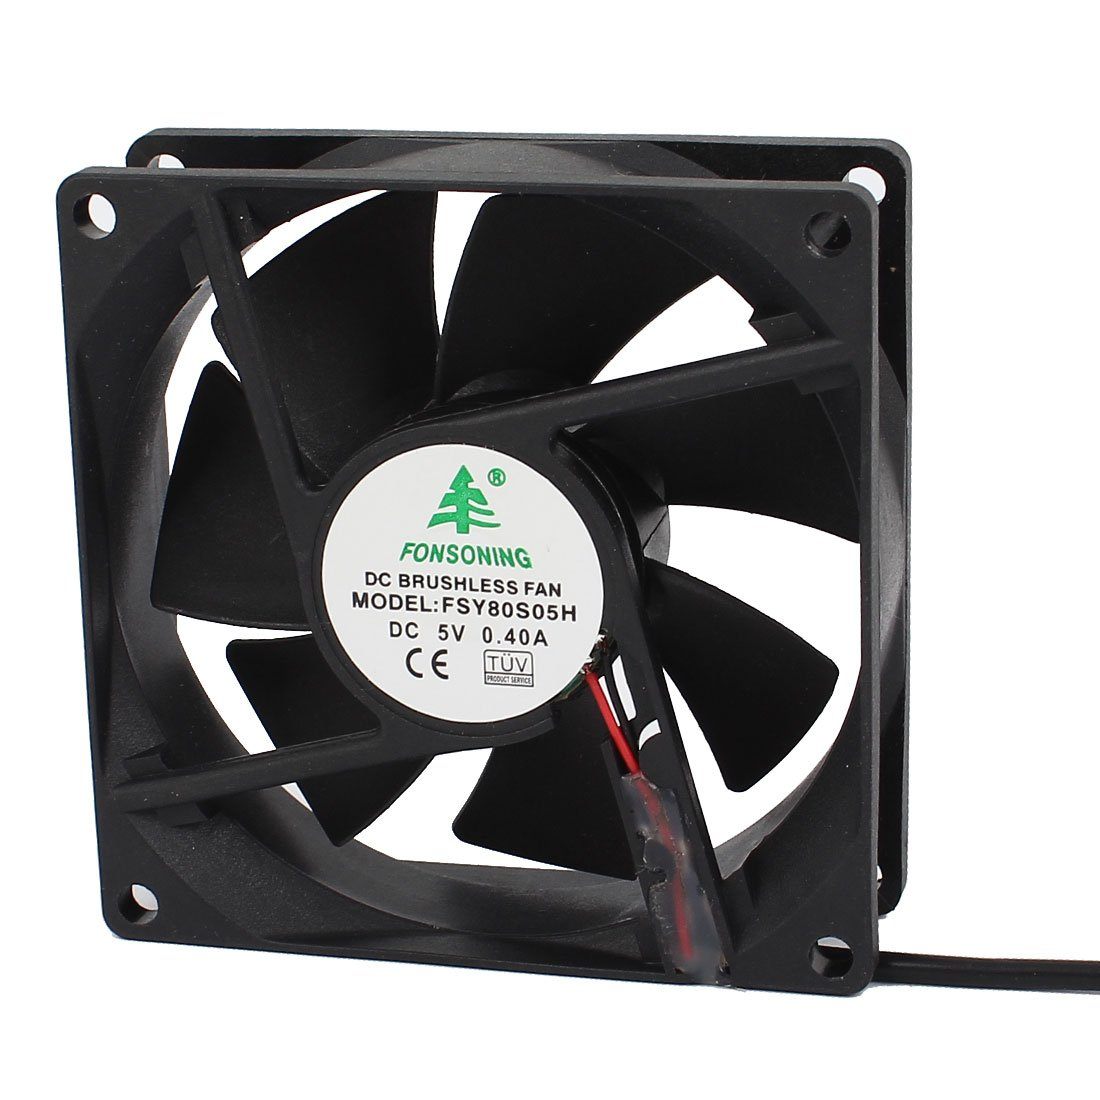 uxcell a14121700ux0066 80 x 80 x 25mm DC Brushless Cooling Blower Fan USB Charger 5V 0.4A